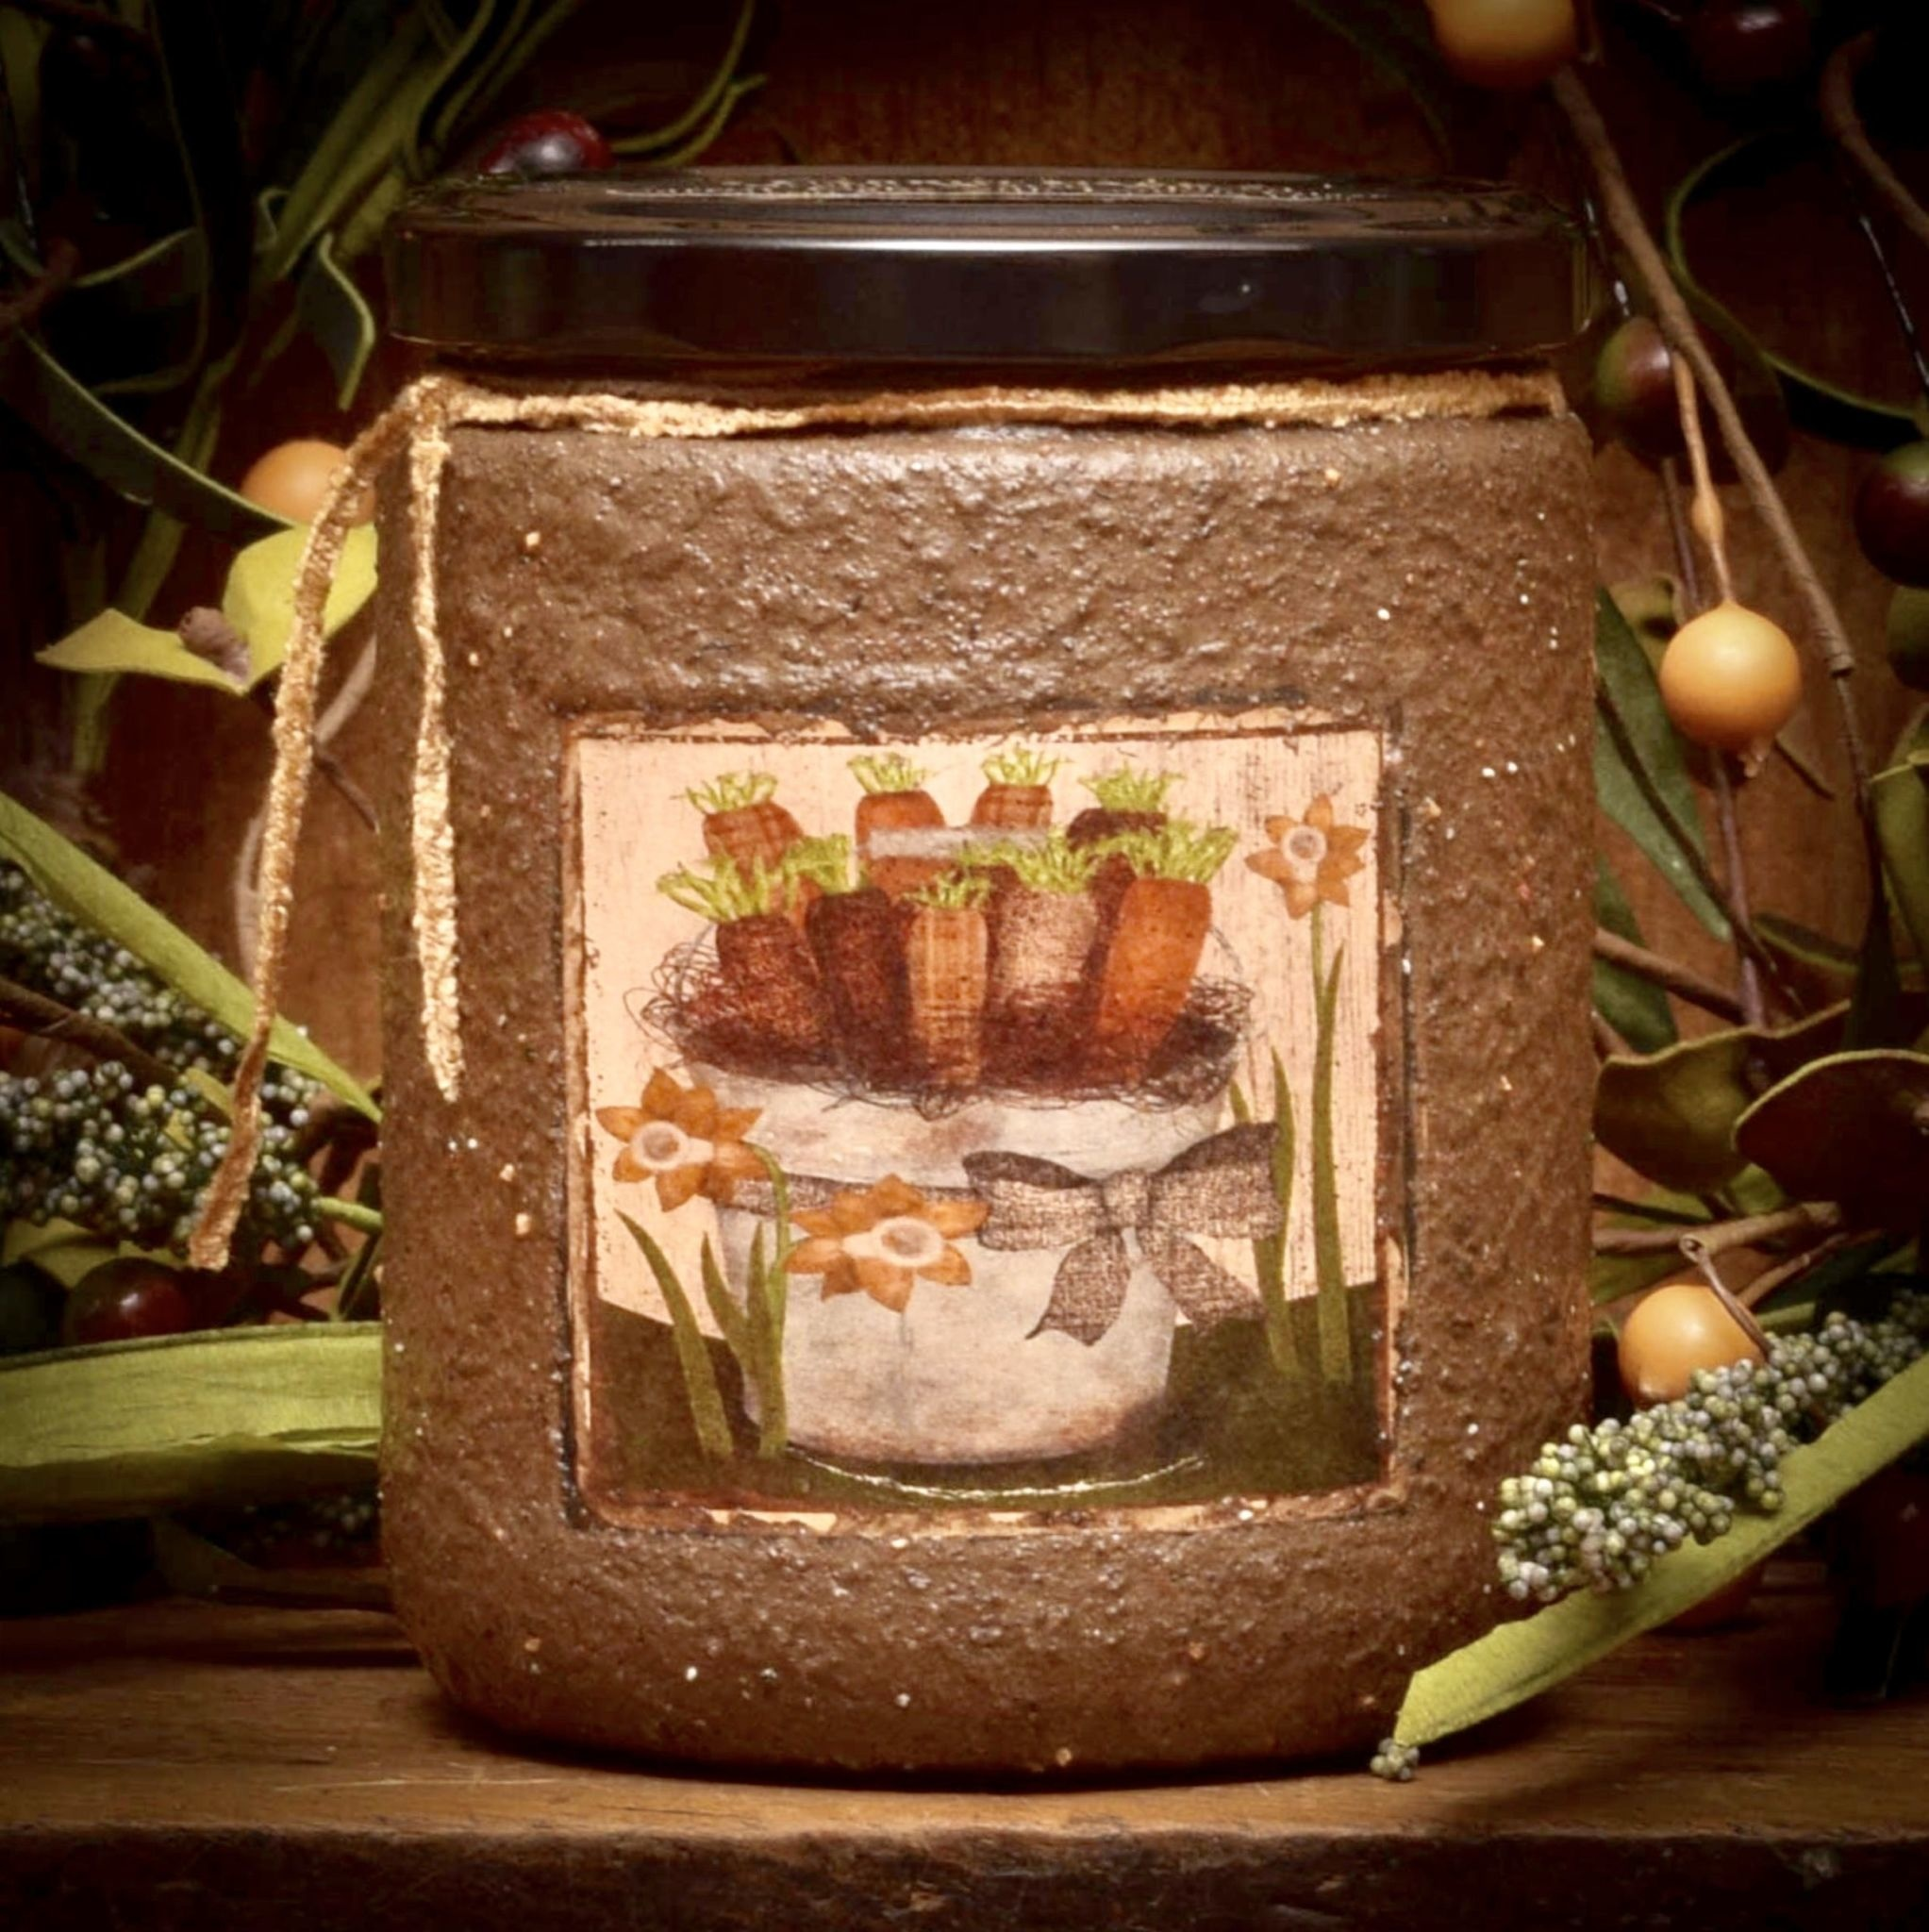 Herbal Star Candles Carrot Cake Painted Soy Jar Candle 16oz